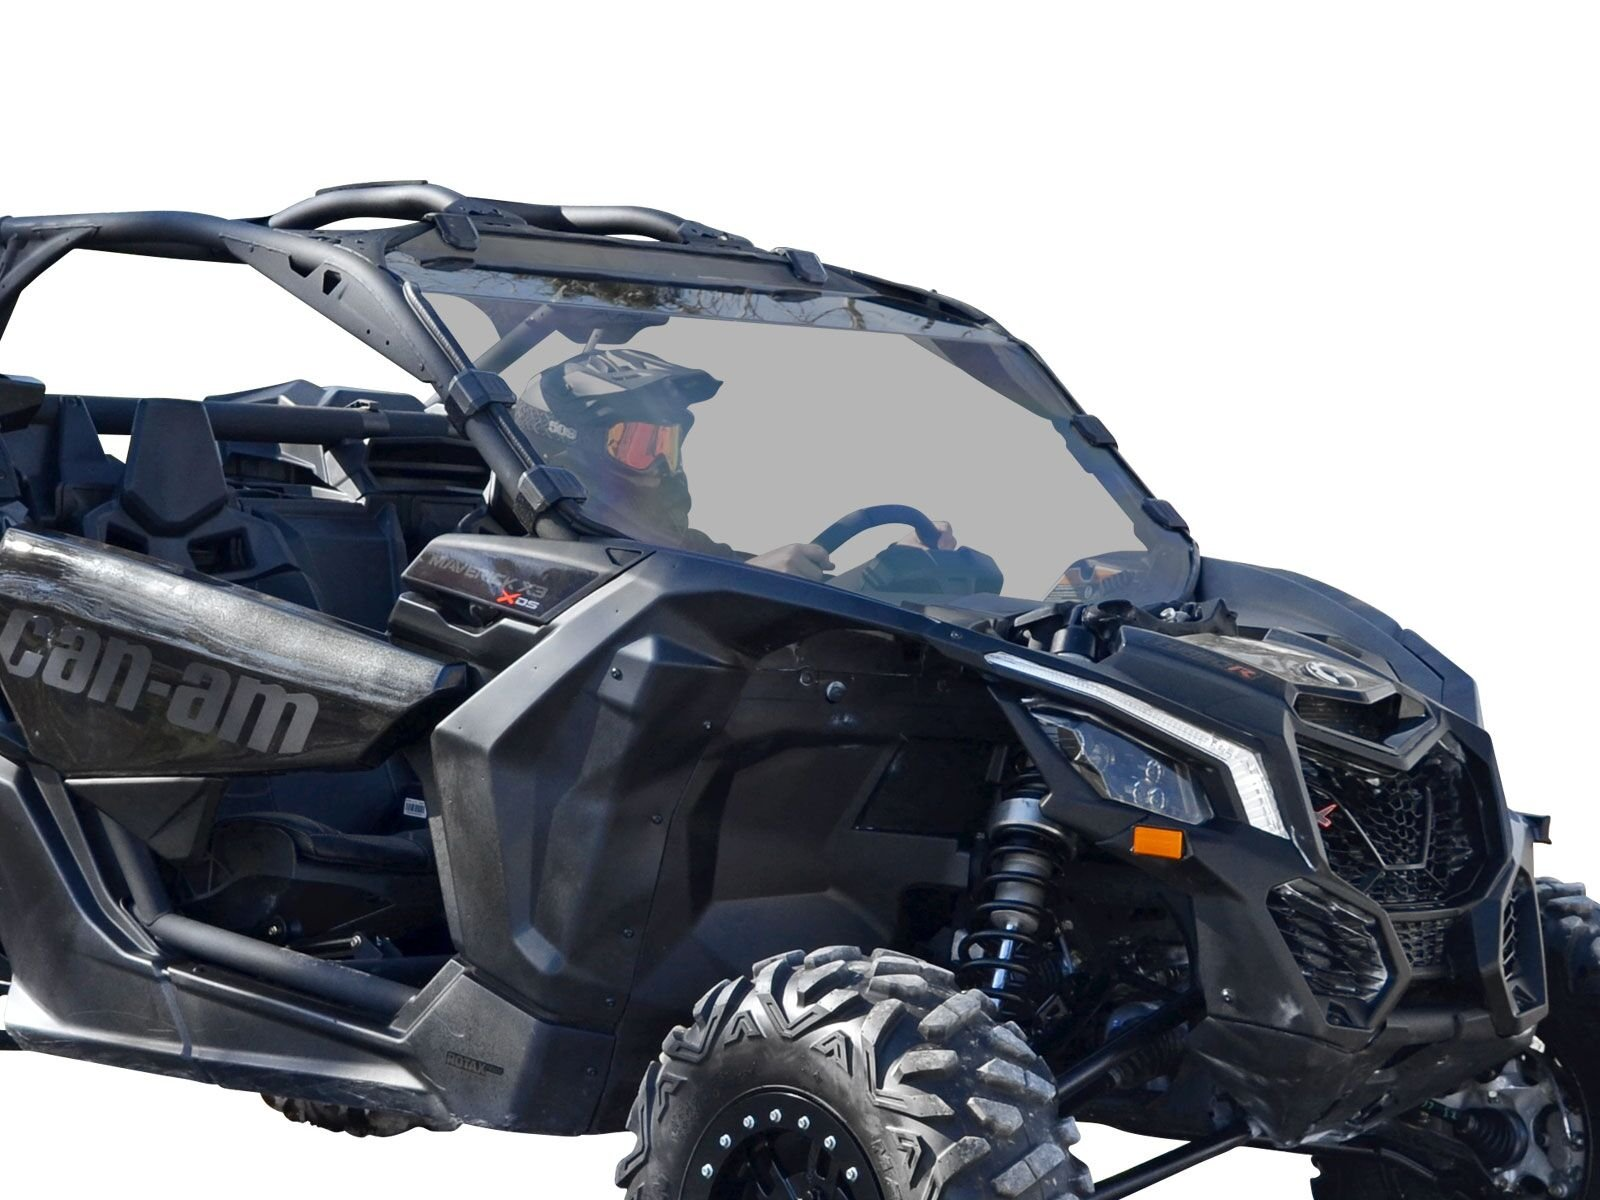 SuperATV Heavy Duty Scratch Resistant Tinted Full Windshield for Can-Am Maverick X3 900 / Turbo/X RC/X RS/X DS/X MR/MAX (2017+) - Light Tinted Scratch Resistant Polycarbonate